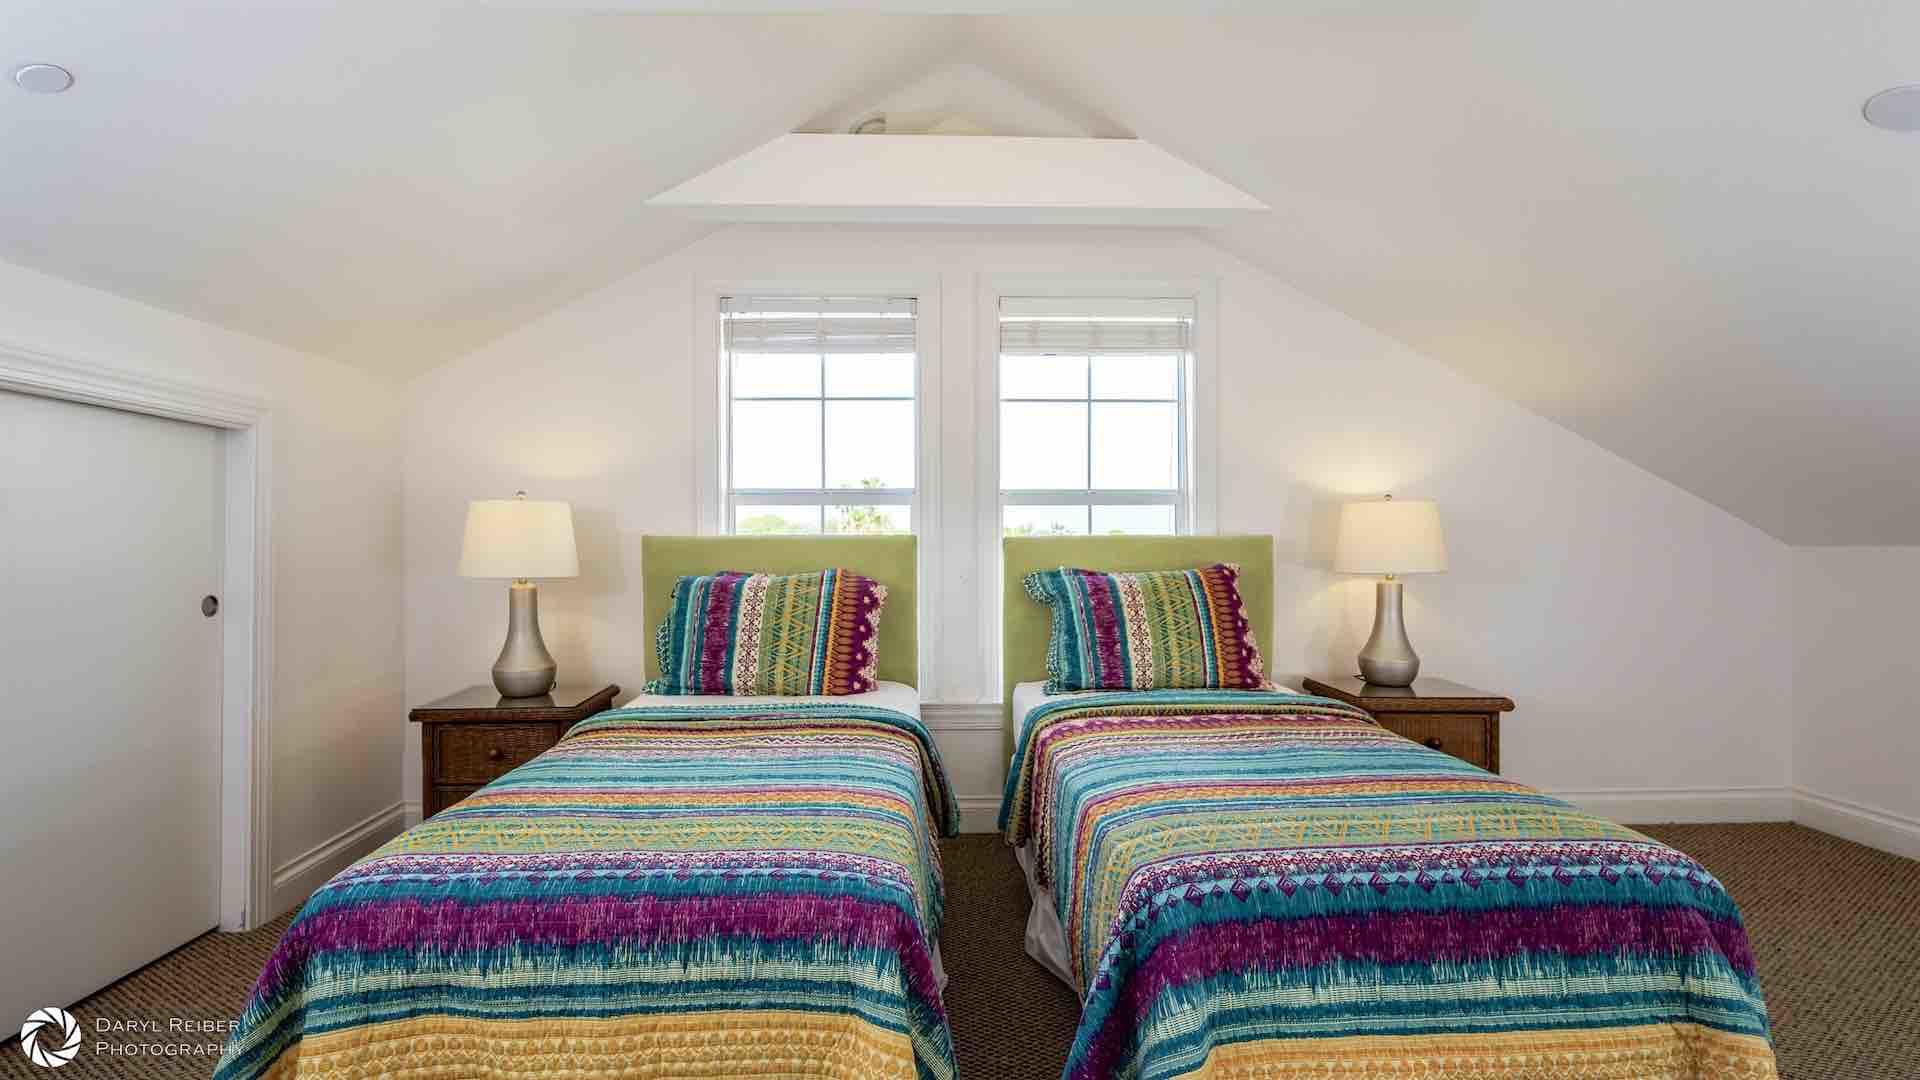 The fourth bedroom is located on the third floor, with two twin beds that can convert to a King bed...